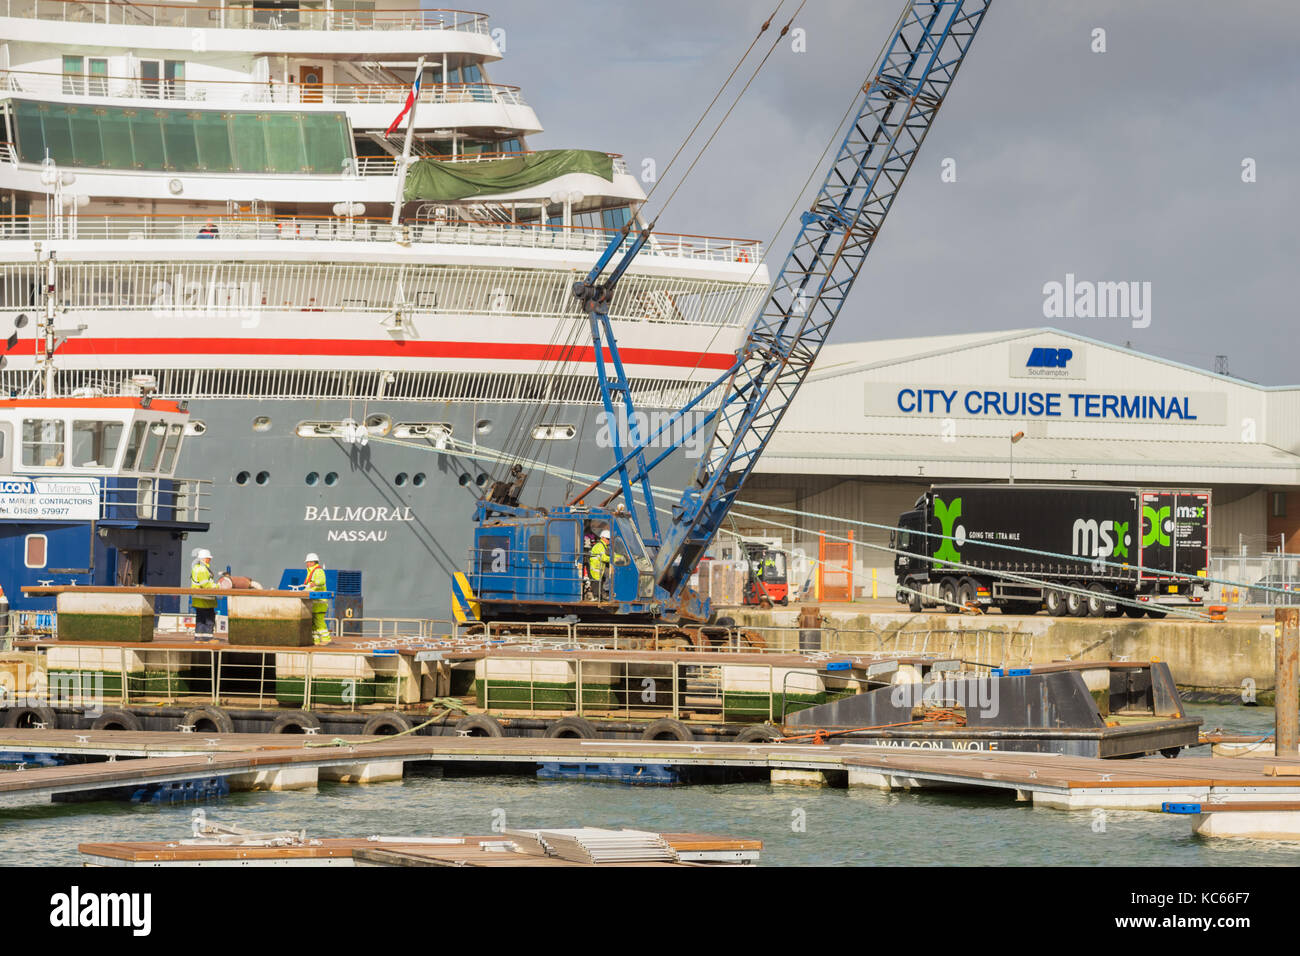 ABP staff working at City Cruise Terminal at Southampton docks/ port with the Balmoral cruise liner in the background - Stock Image